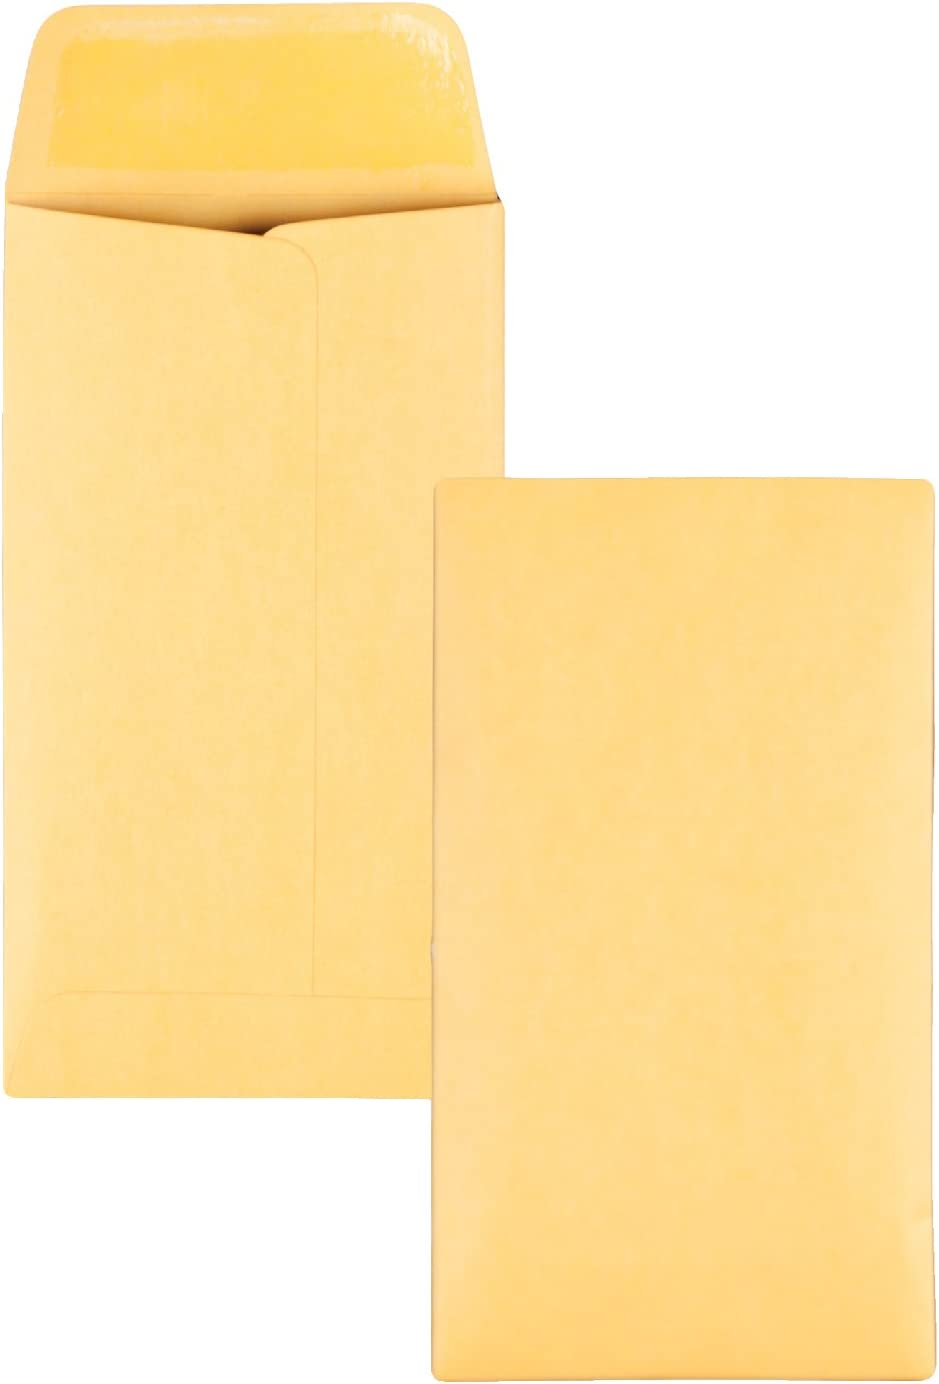 Quality Park #6 Coin Envelopes, 3 3/8 x 6, Gummed, Small Parts, Jewelry & Seed Envelopes for Garden, Office, 28 lb Brown Kraft, 500 per Box (QUA50662)